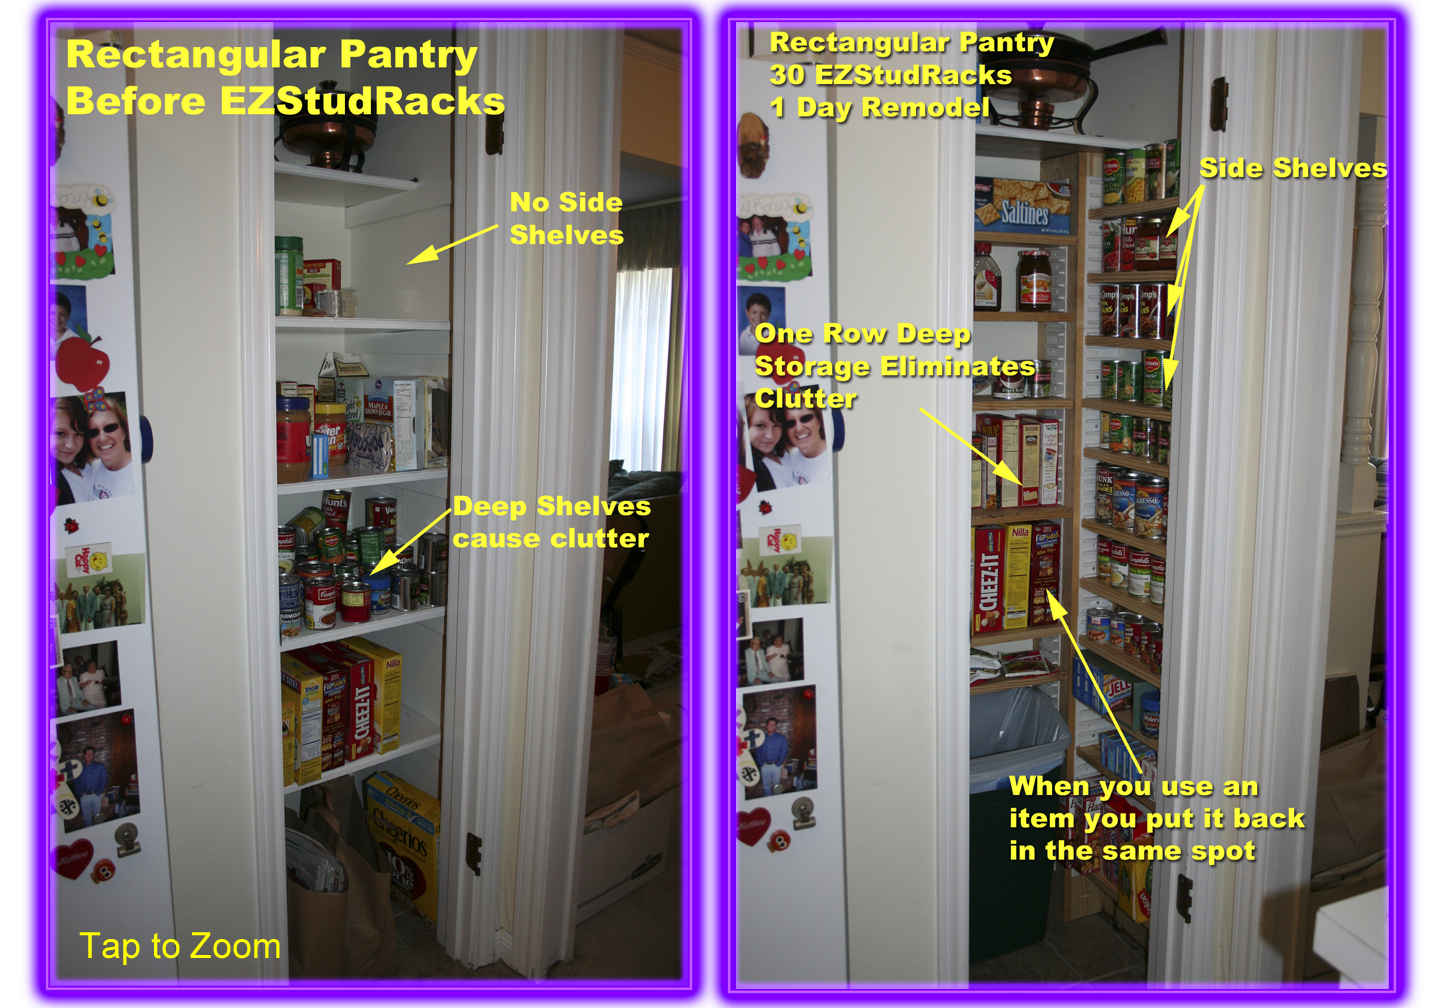 Rectangular Pantries